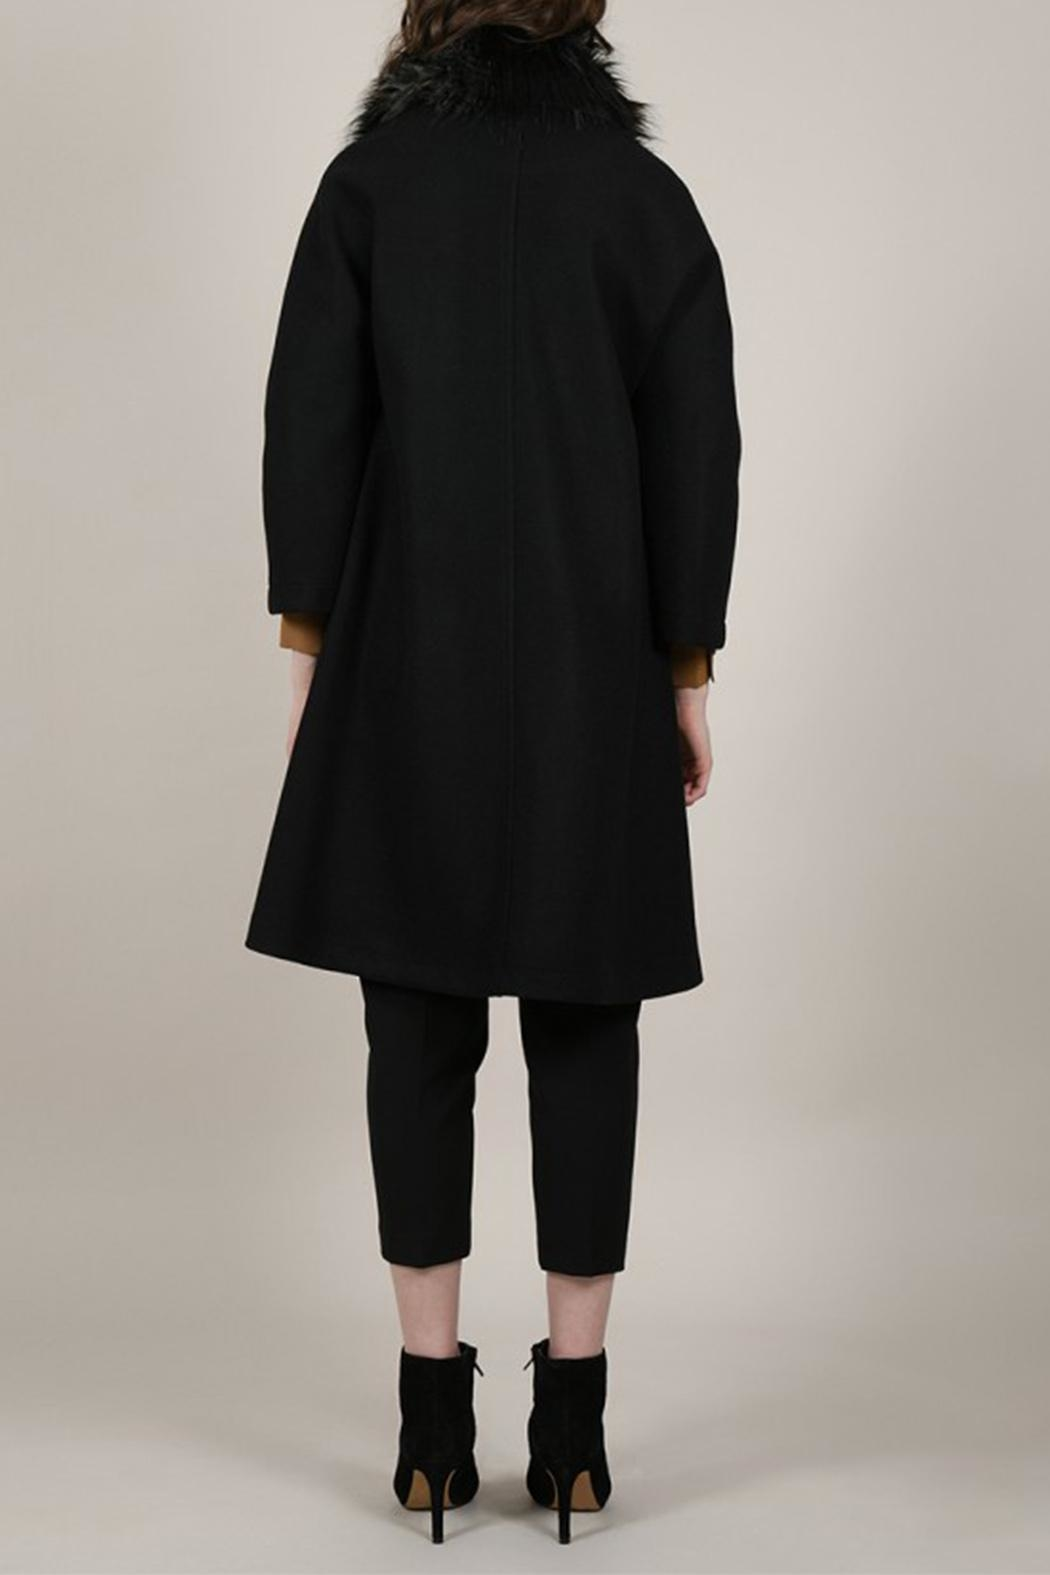 Molly Bracken Overlay Coat - Side Cropped Image